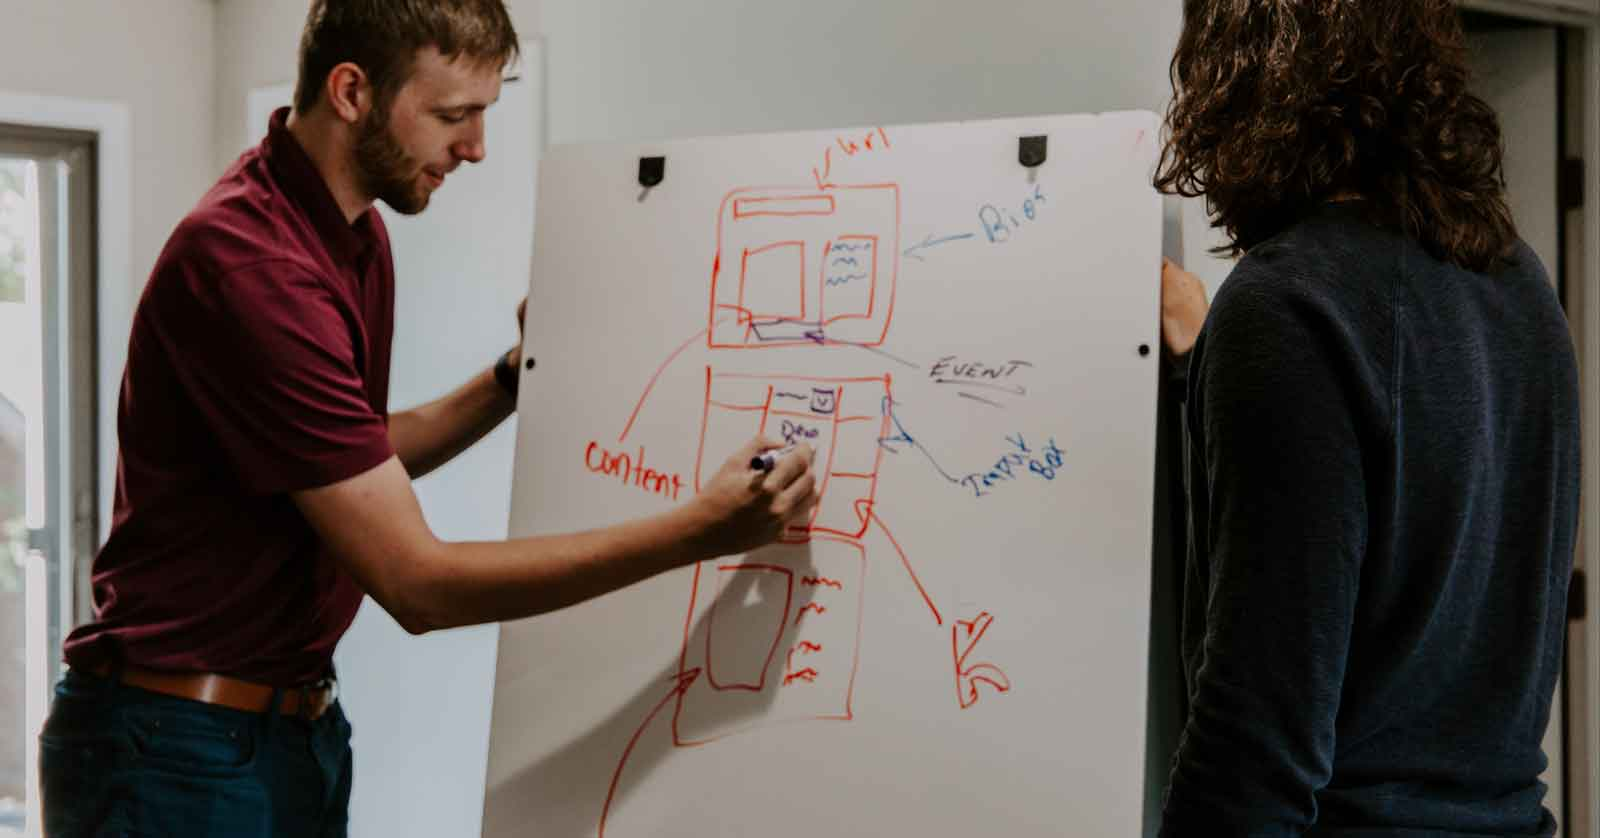 How collaborative planning software can fix the disconnect between supply and demand